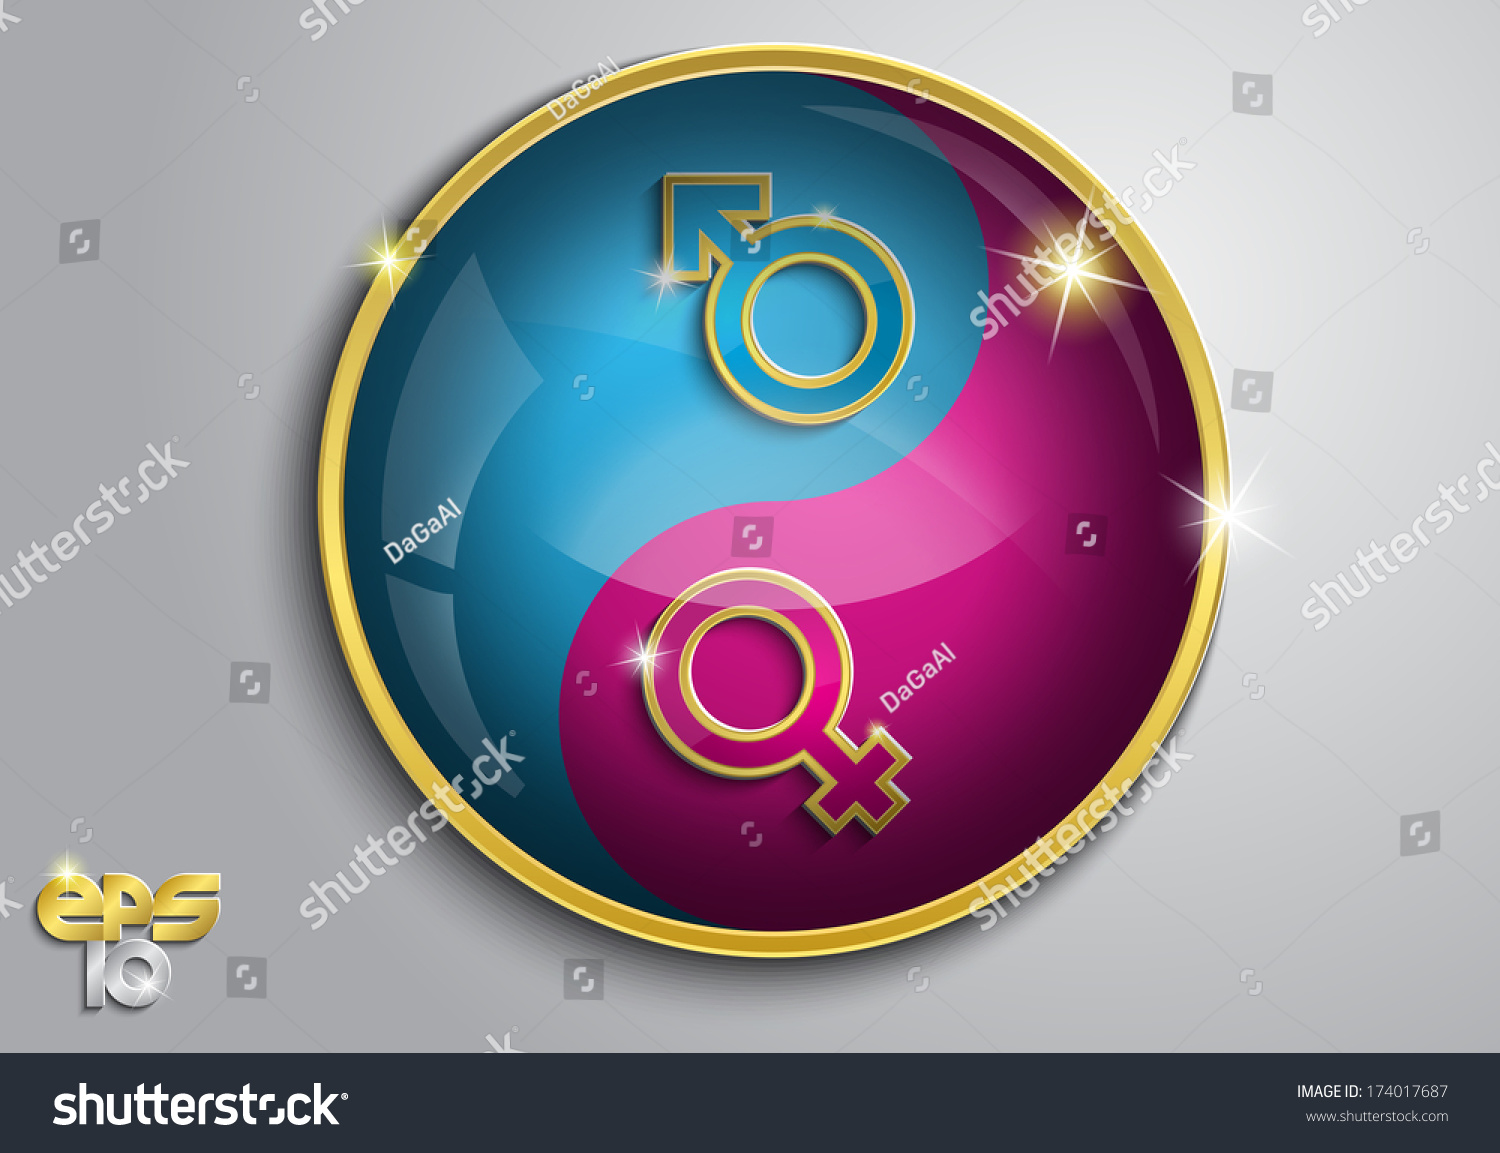 Pink Blue Symbol Male Female On Stock Vector 174017687 Shutterstock